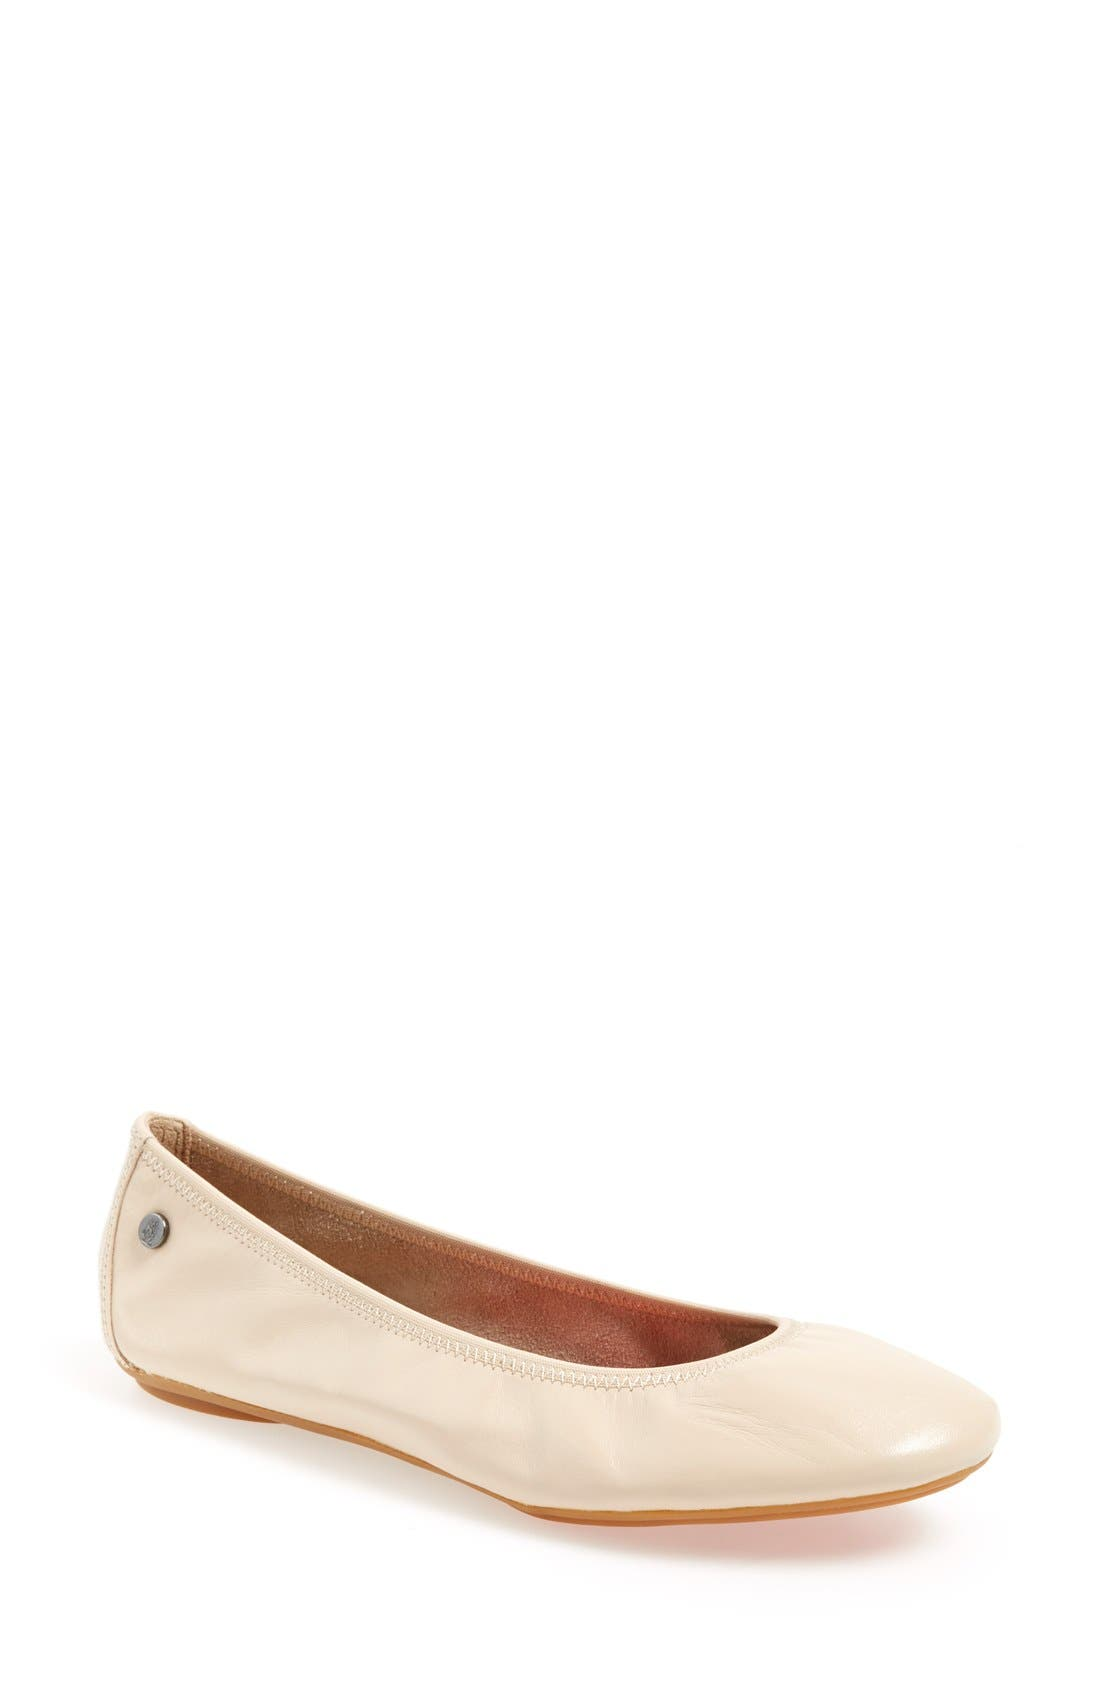 'Chaste' Ballet Flat,                             Main thumbnail 1, color,                             Nude Leather